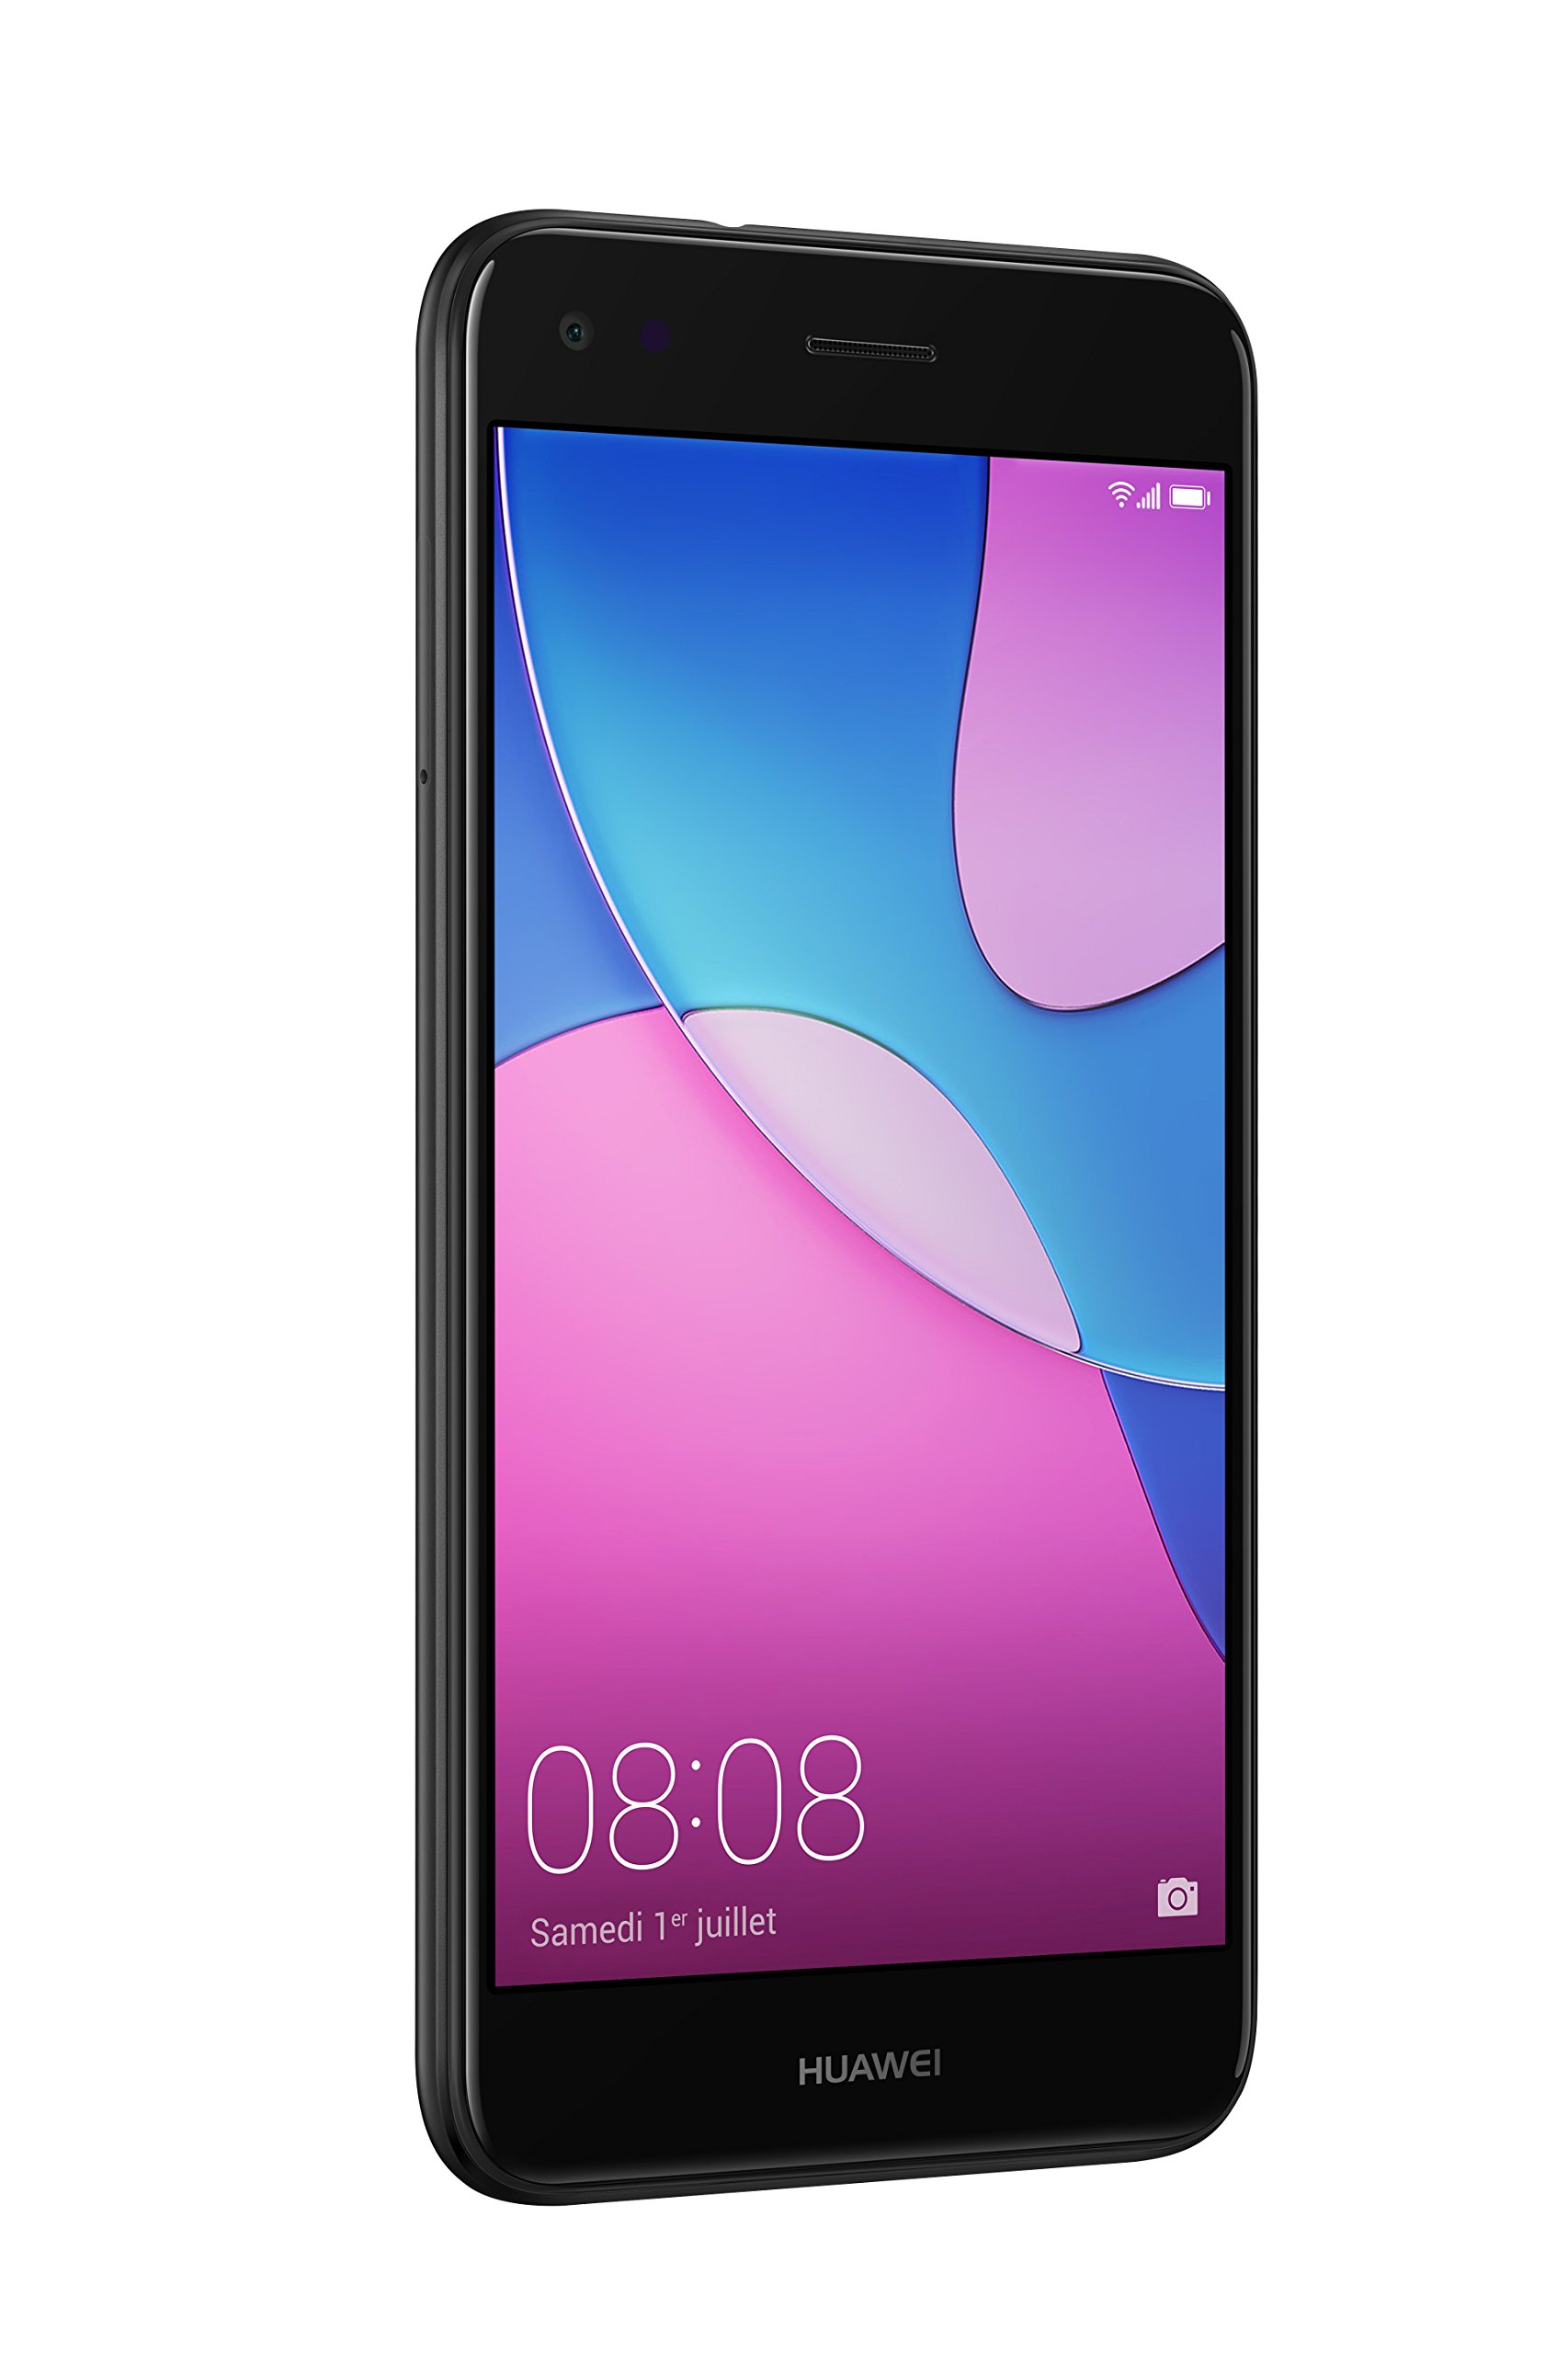 Huawei Y6 Pro 2017 Dual-SIM black Android 7 0 Smartphone: Amazon co